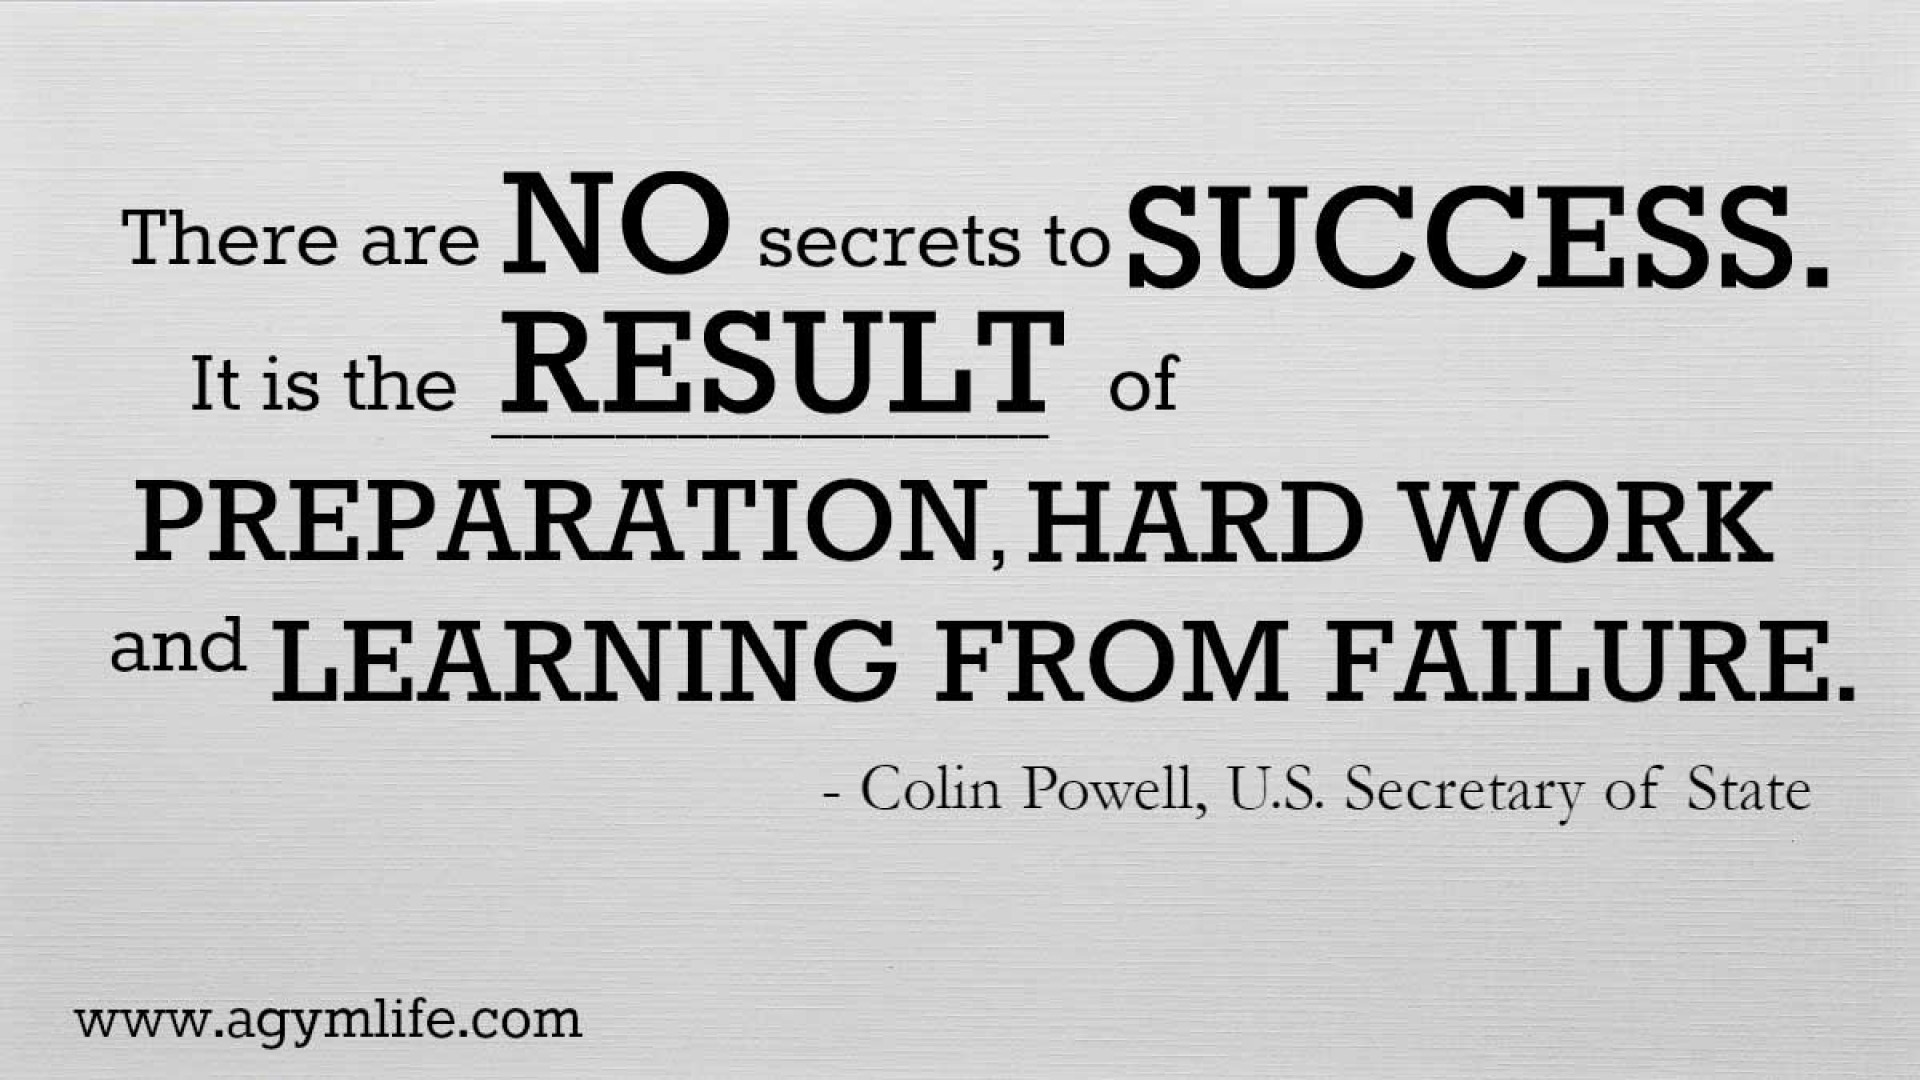 019 Colin Stuckert Powell Quote Agymlife Com Essay Example Success In Fantastic Life How To Become Successful Person Secret Of 1920